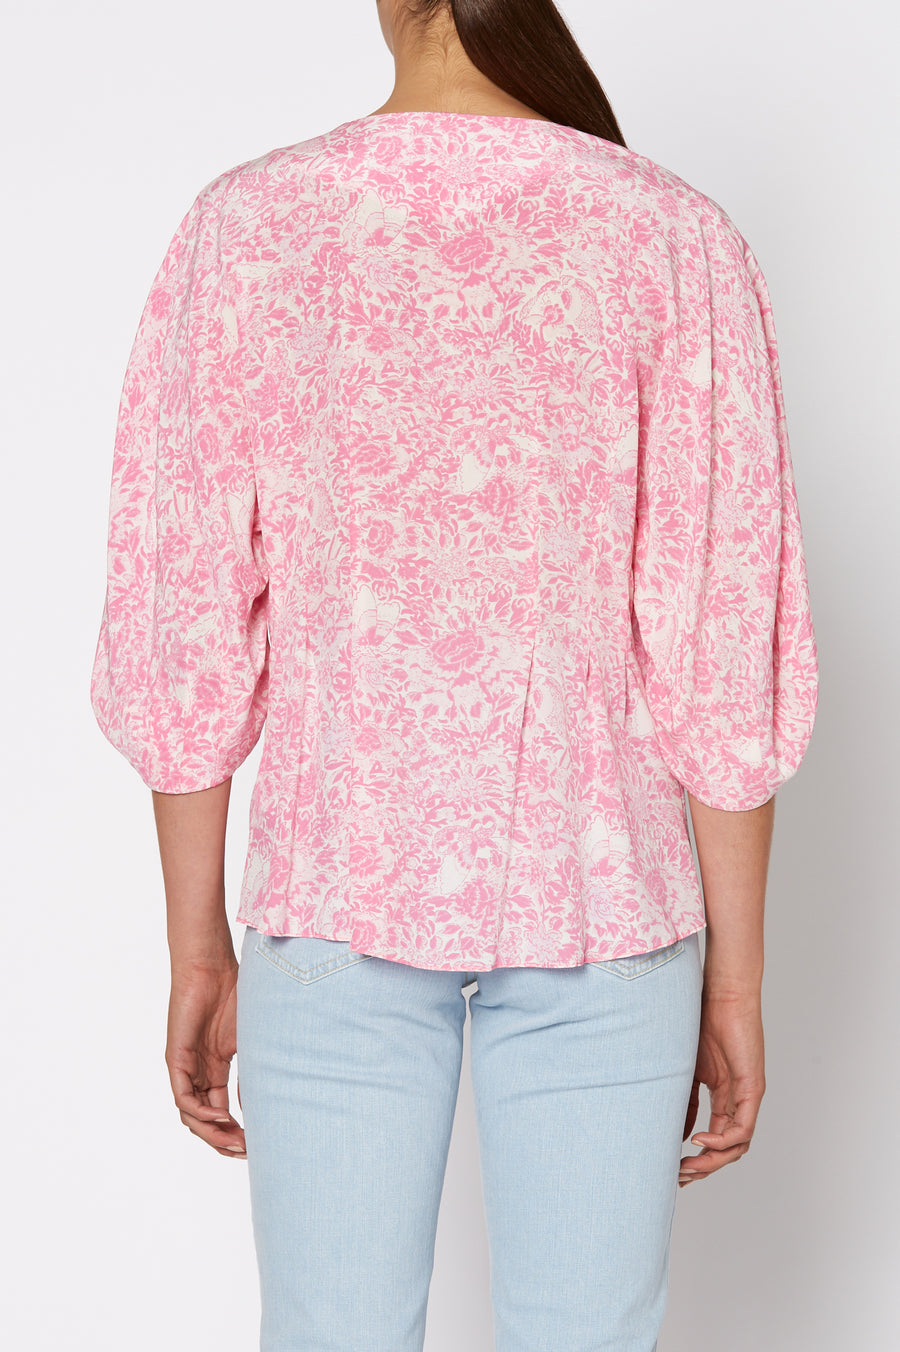 CDC FLORAL COCOON SLEEVE BLOUSE, PINK color